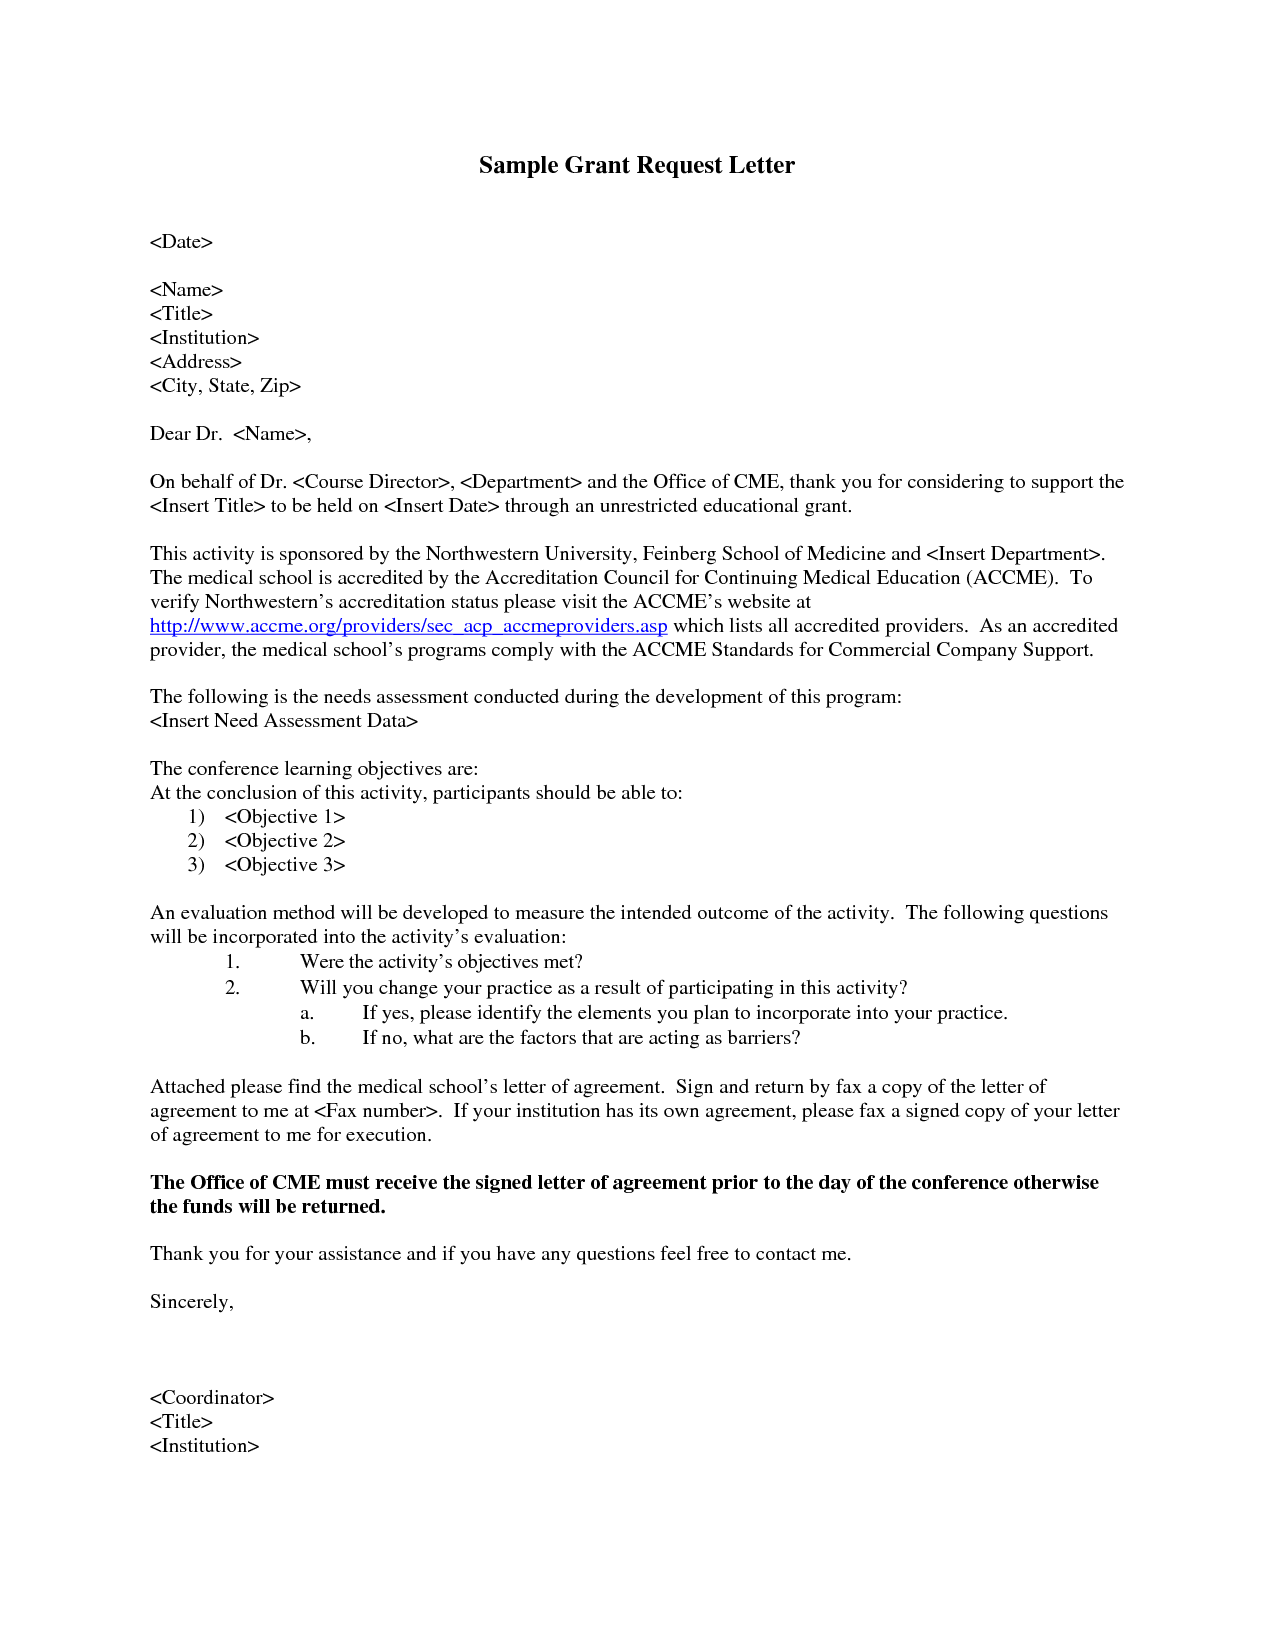 Grant request letter write a grant request letter for Application for funding letter template